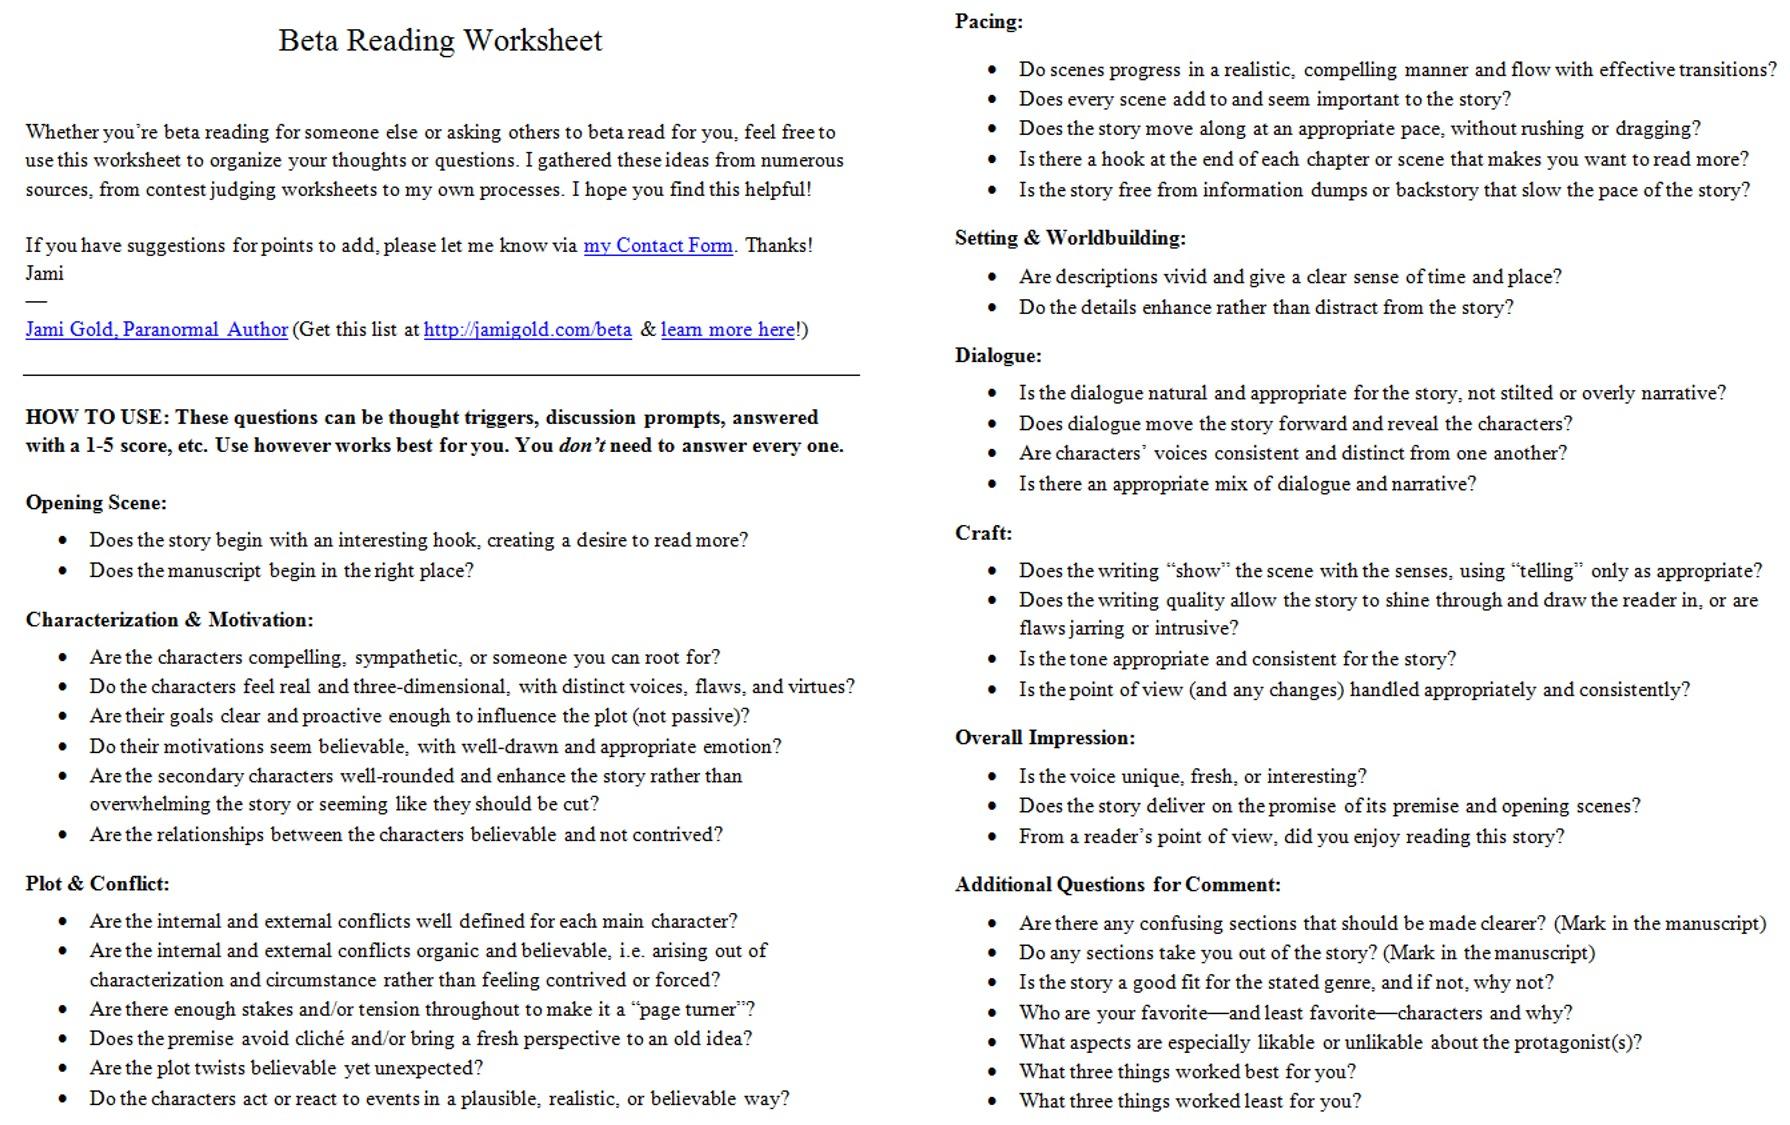 Weirdmailus  Personable Worksheets For Writers  Jami Gold Paranormal Author With Exciting Screen Shot Of The Twopage Beta Reading Worksheet With Attractive Budget Worksheet Templates Also Density Worksheet Pdf In Addition Spelling Worksheets For Kindergarten And Math Worksheets Algebra  As Well As Assonance Worksheets Additionally High Risk Situations For Relapse Worksheet From Jamigoldcom With Weirdmailus  Exciting Worksheets For Writers  Jami Gold Paranormal Author With Attractive Screen Shot Of The Twopage Beta Reading Worksheet And Personable Budget Worksheet Templates Also Density Worksheet Pdf In Addition Spelling Worksheets For Kindergarten From Jamigoldcom